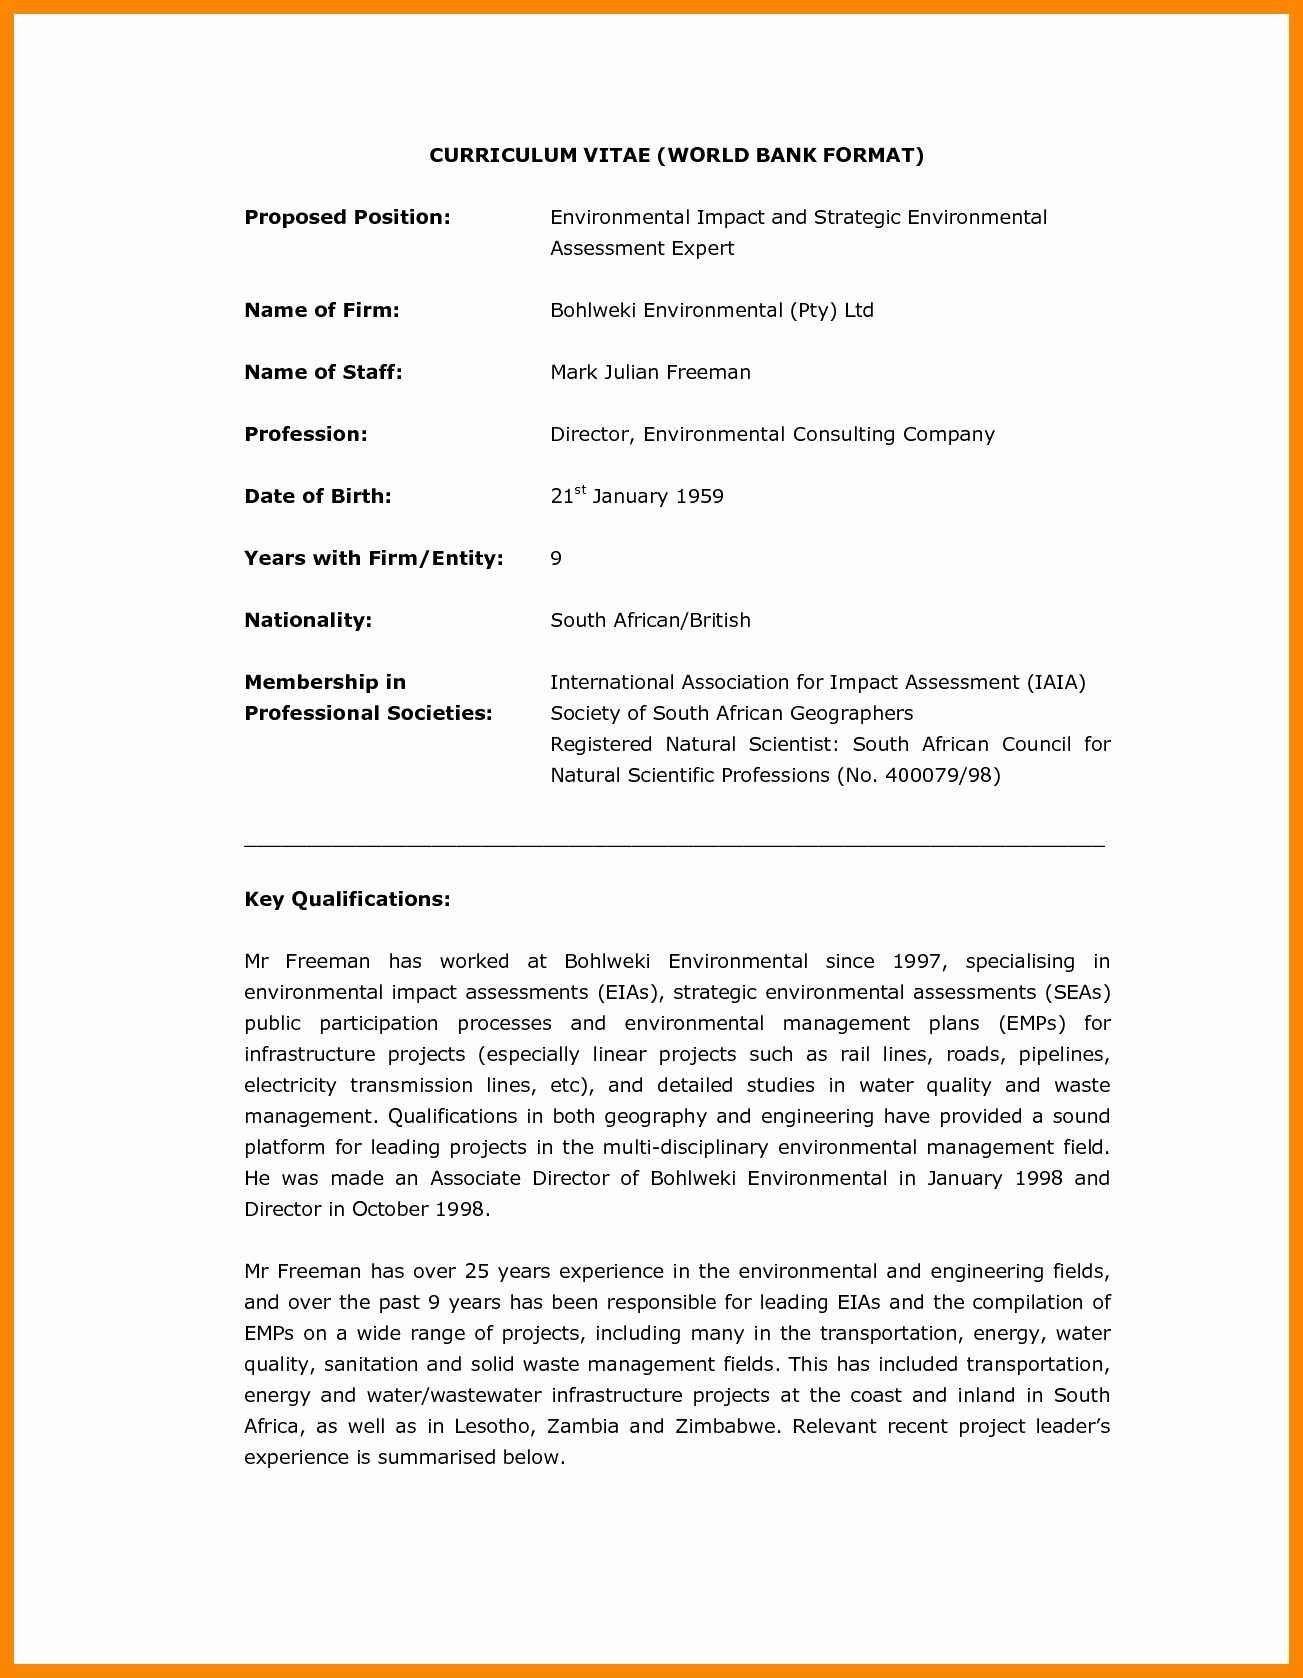 shidduch resume template example-Shidduch Resume Best Shidduch Resume Template Lovely 51 New Stock World Bank Resume 15-h